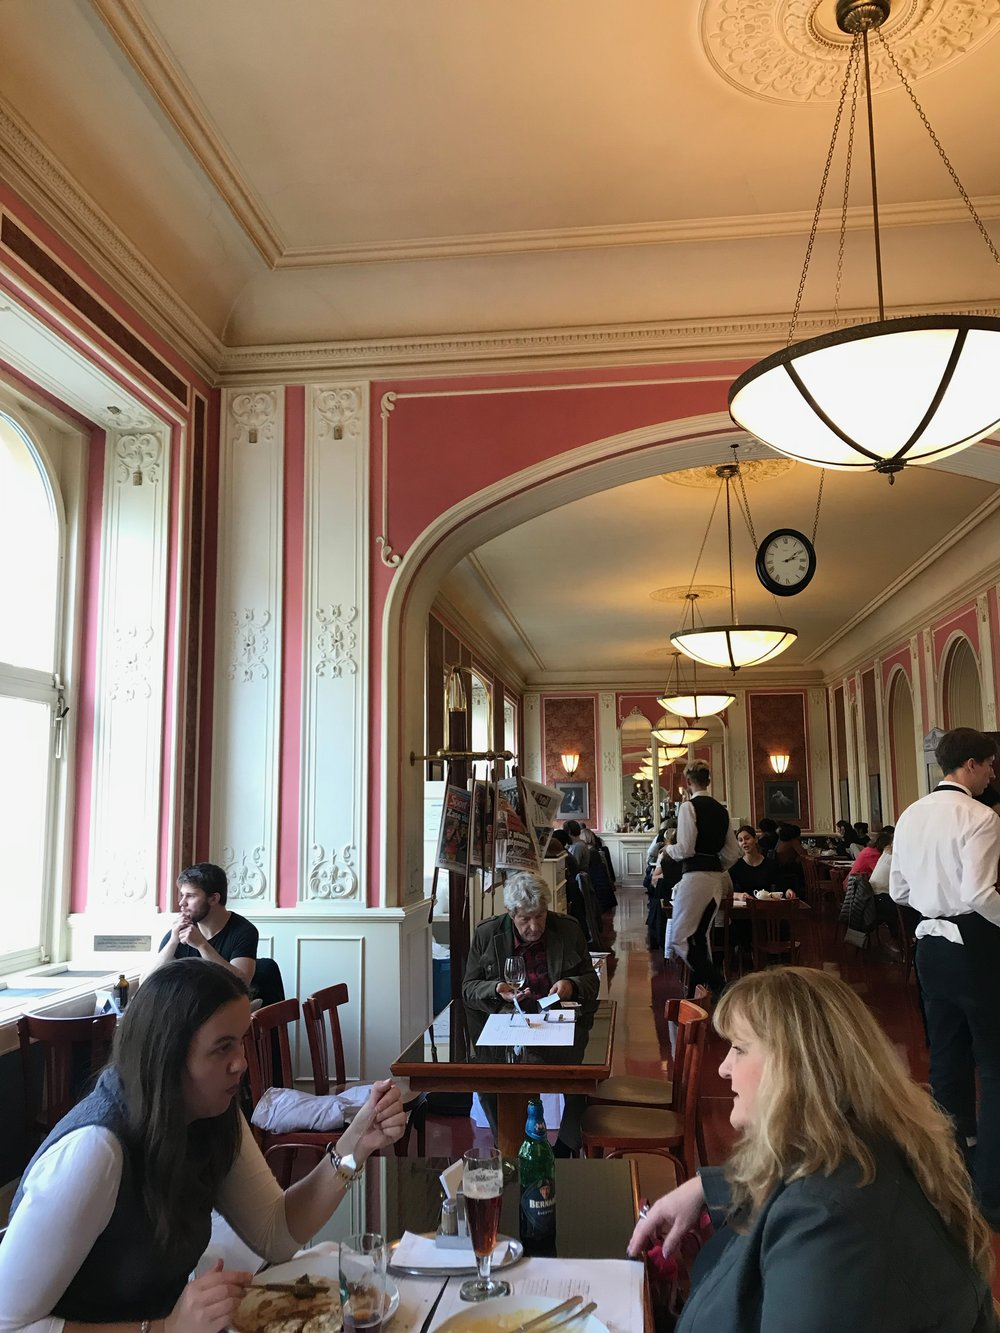 Cafe Louvre - Tj loved the fact that Einstein frequented here!